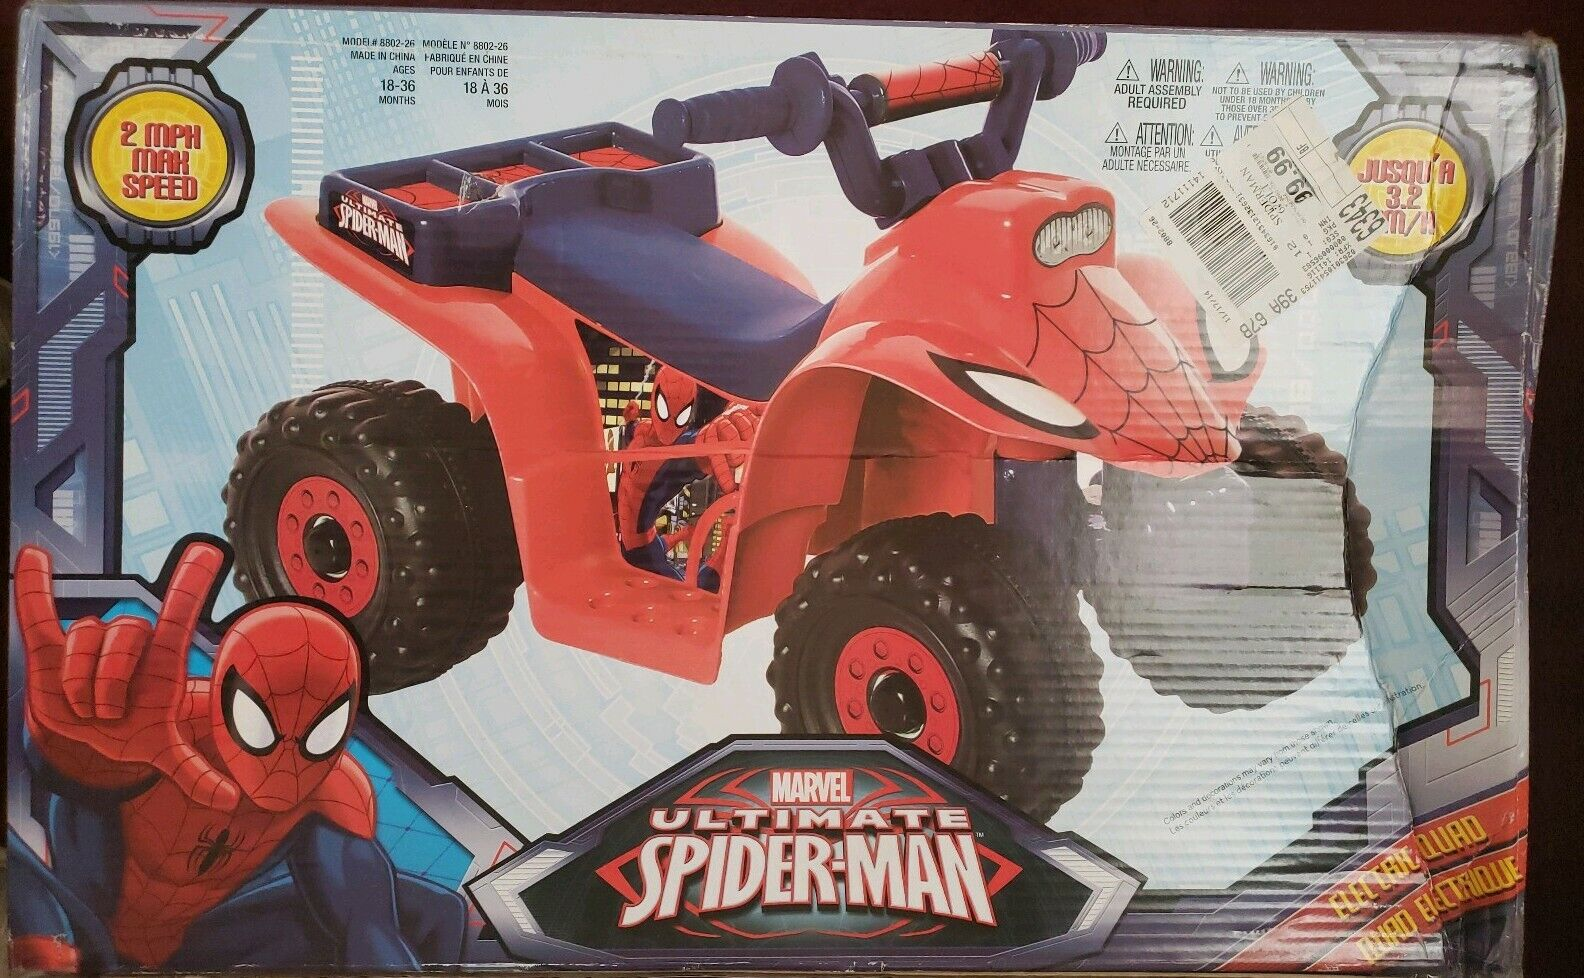 Ride On Toy Marvel Marvel Marvel Ultimate Spider-Man 6V Quad Riding Rechargeable Battery Read b8370a